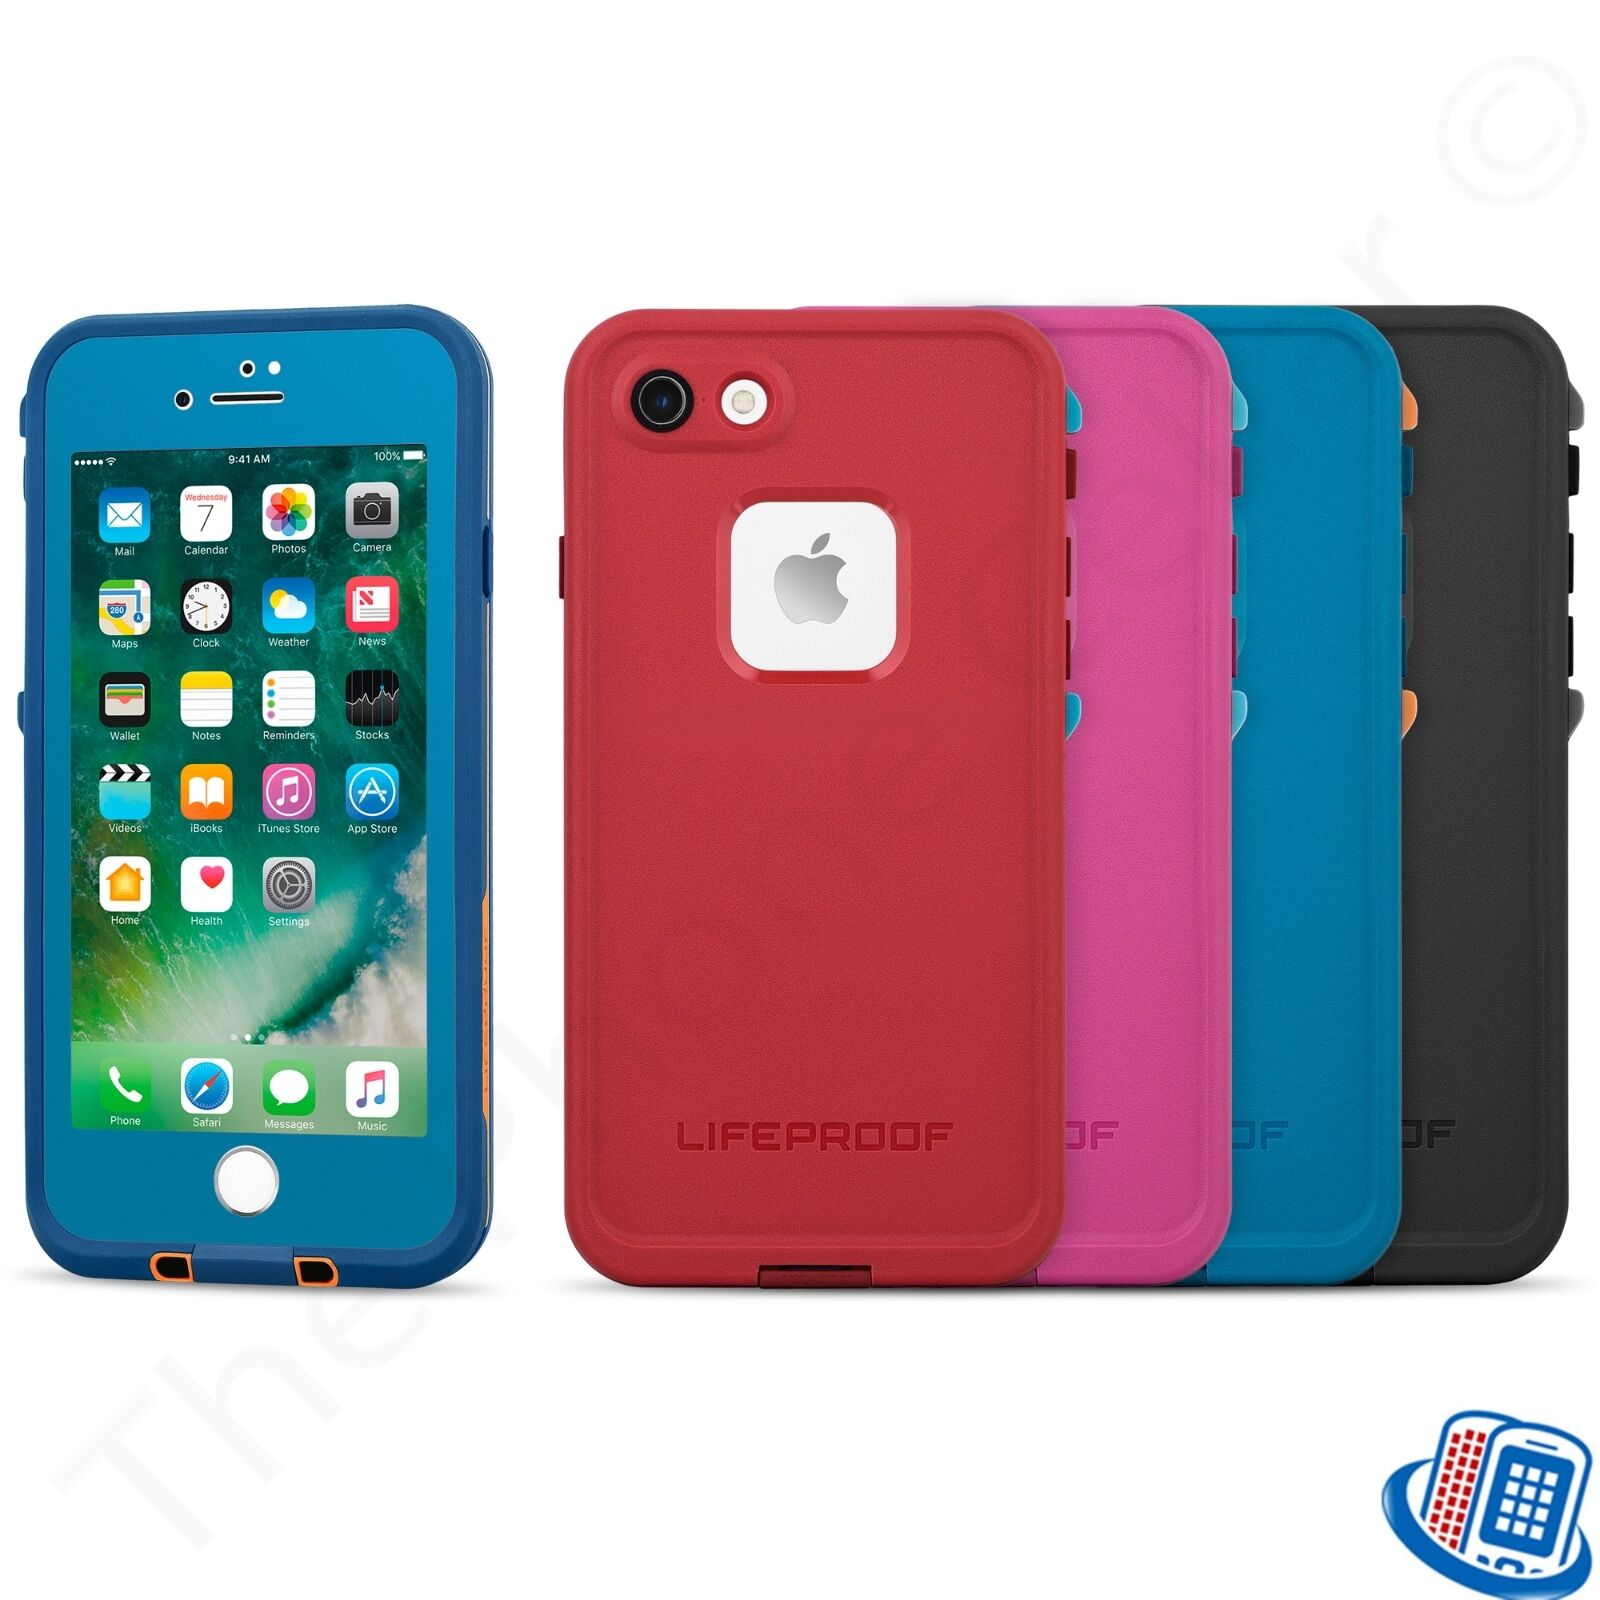 huge discount 0ae52 0f712 Details about New OEM LifeProof FRE Series Waterproof TWPP Case for Apple  iPhone 7 4.7